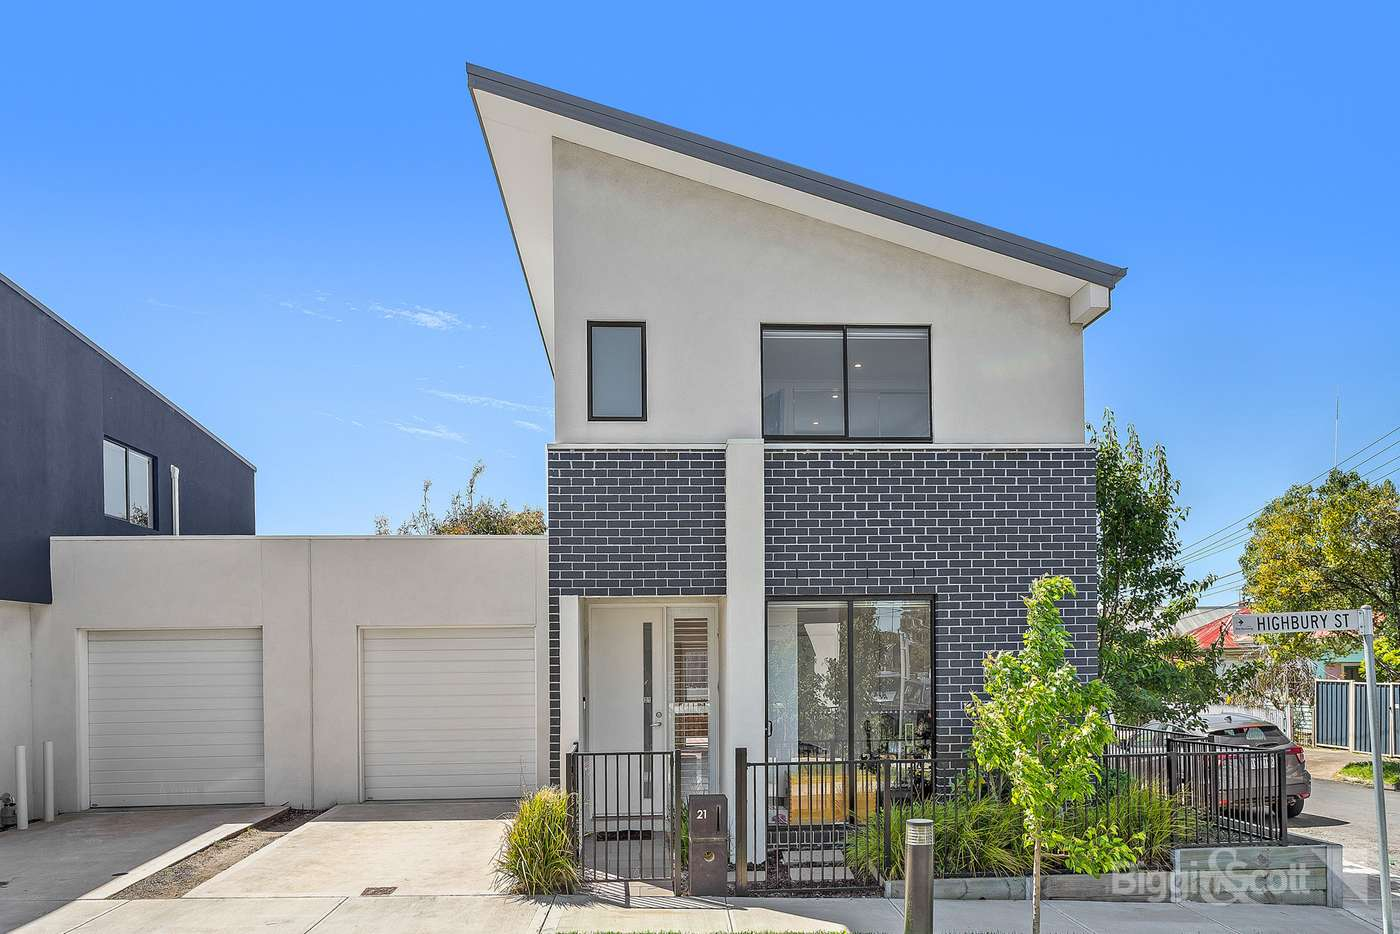 Main view of Homely townhouse listing, 21 Highbury Street, West Footscray VIC 3012